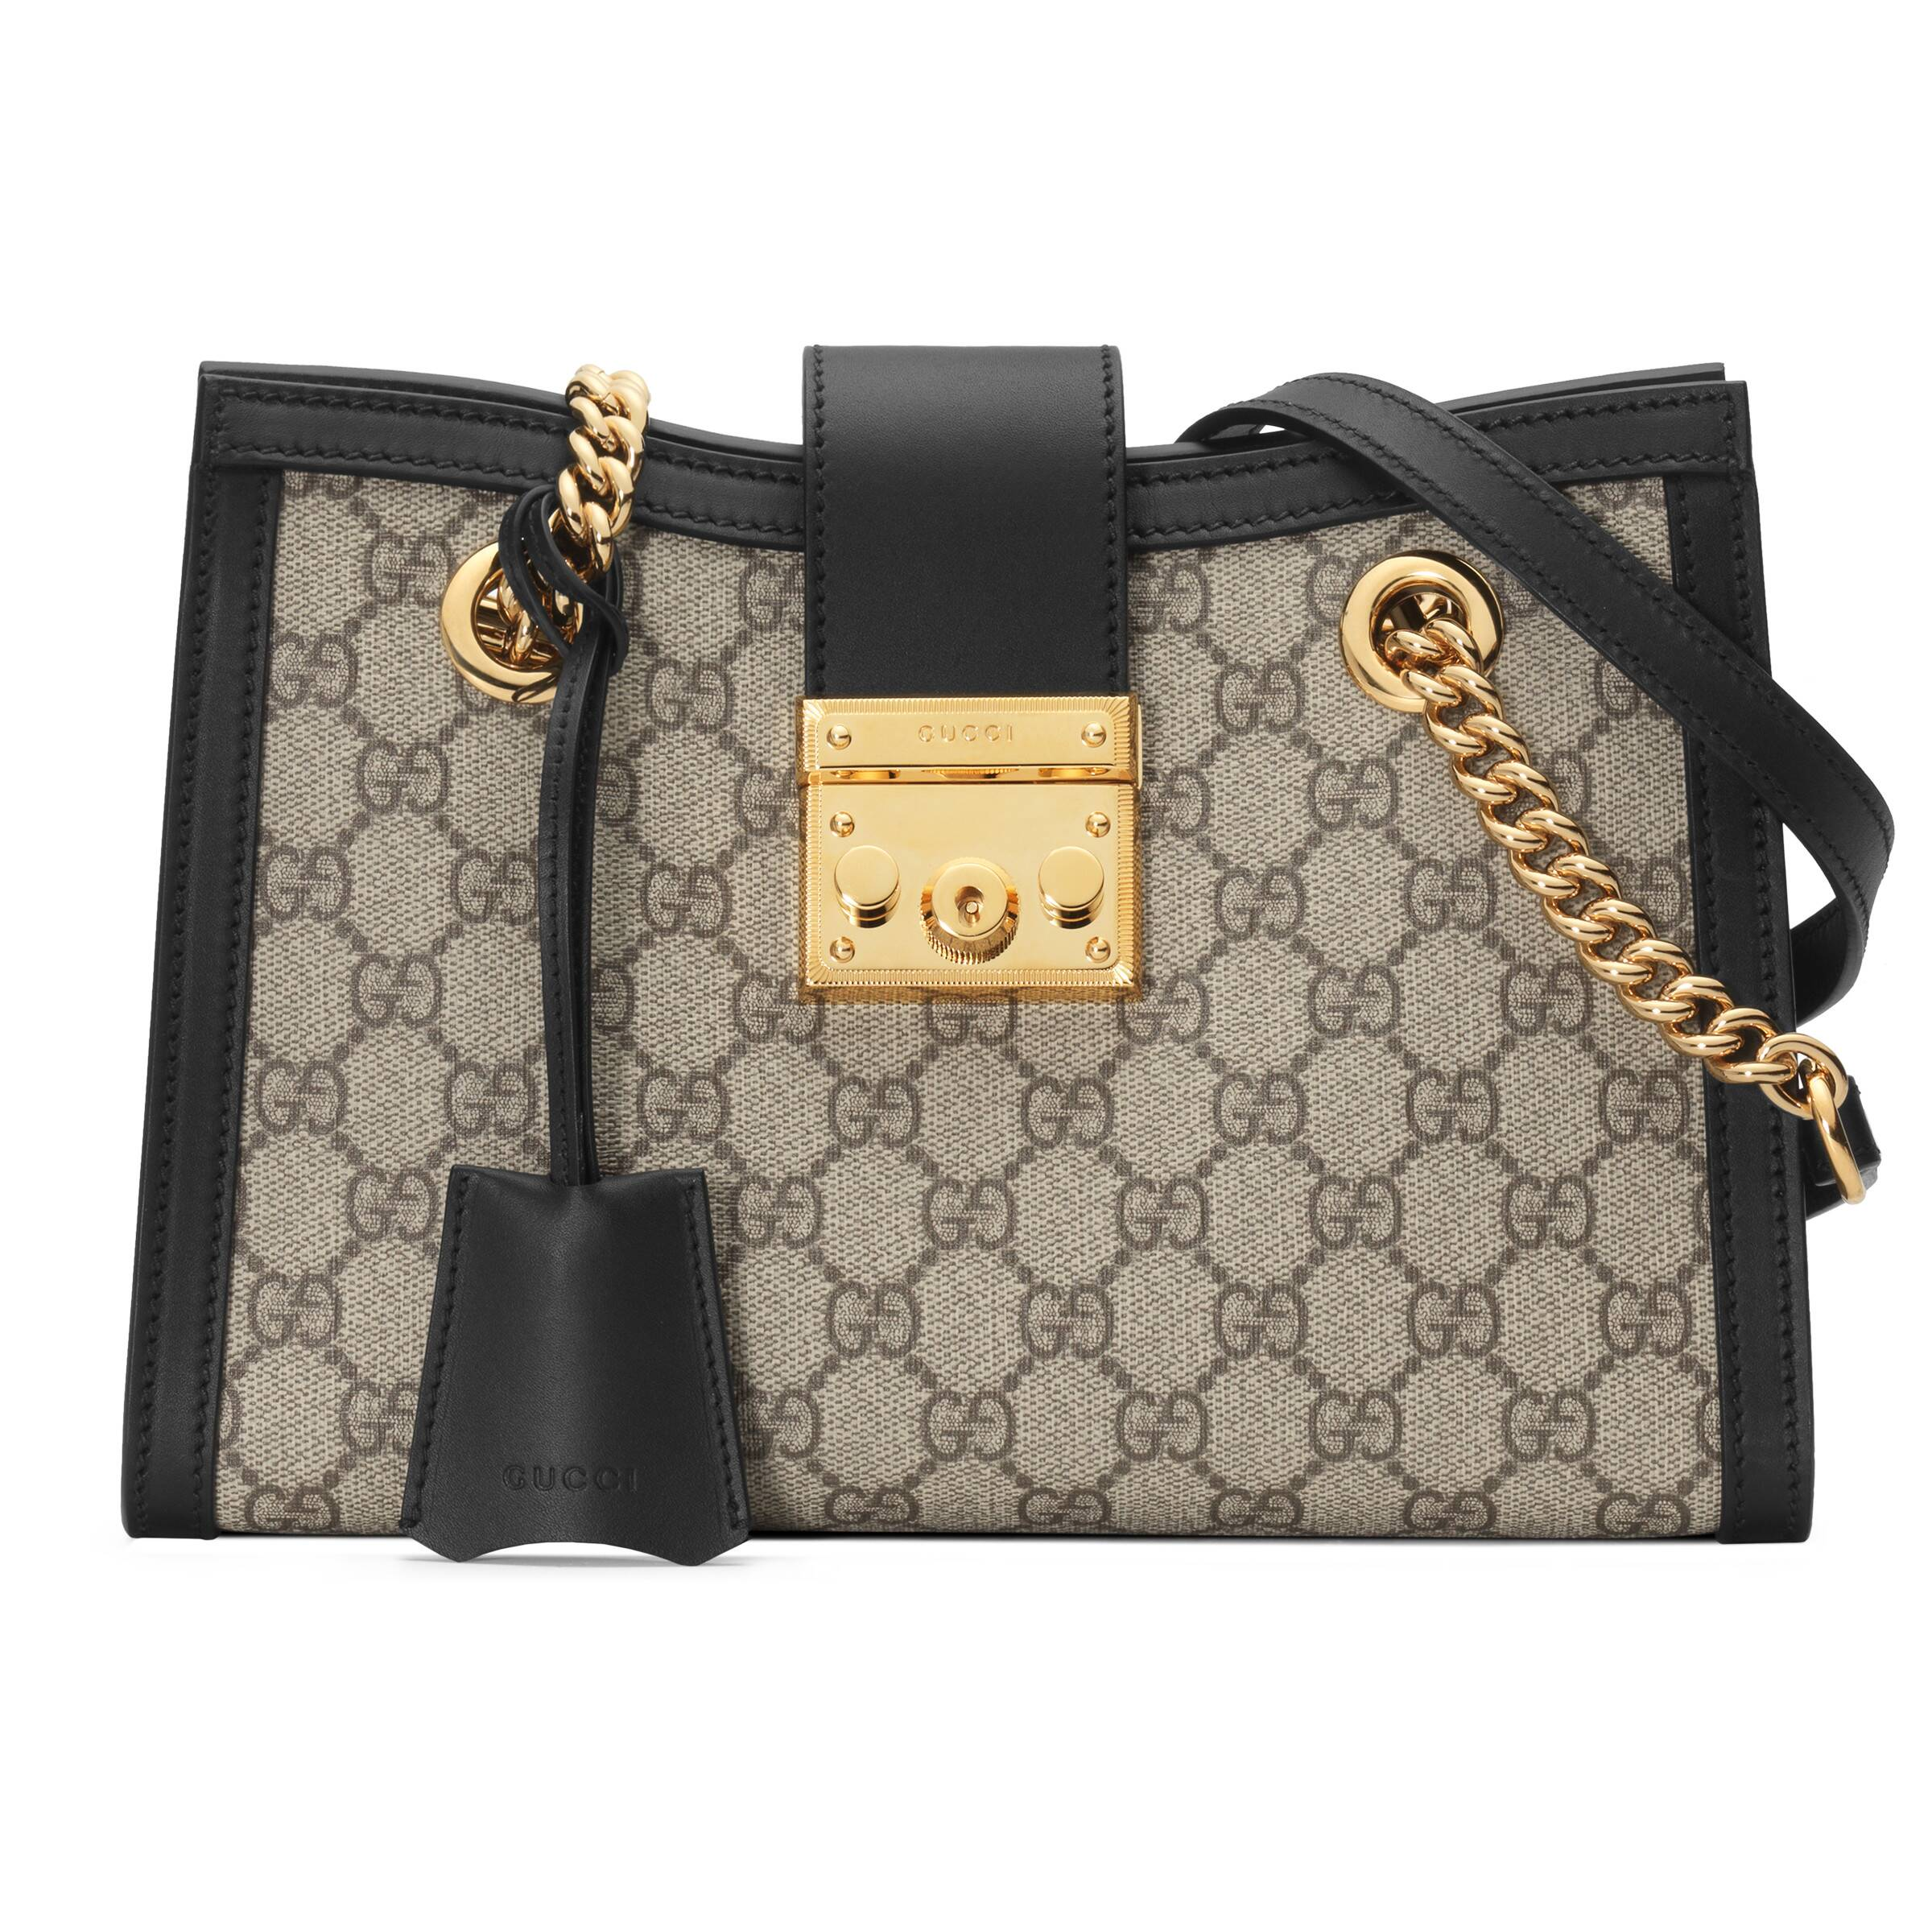 Padlock small GG shoulder bag